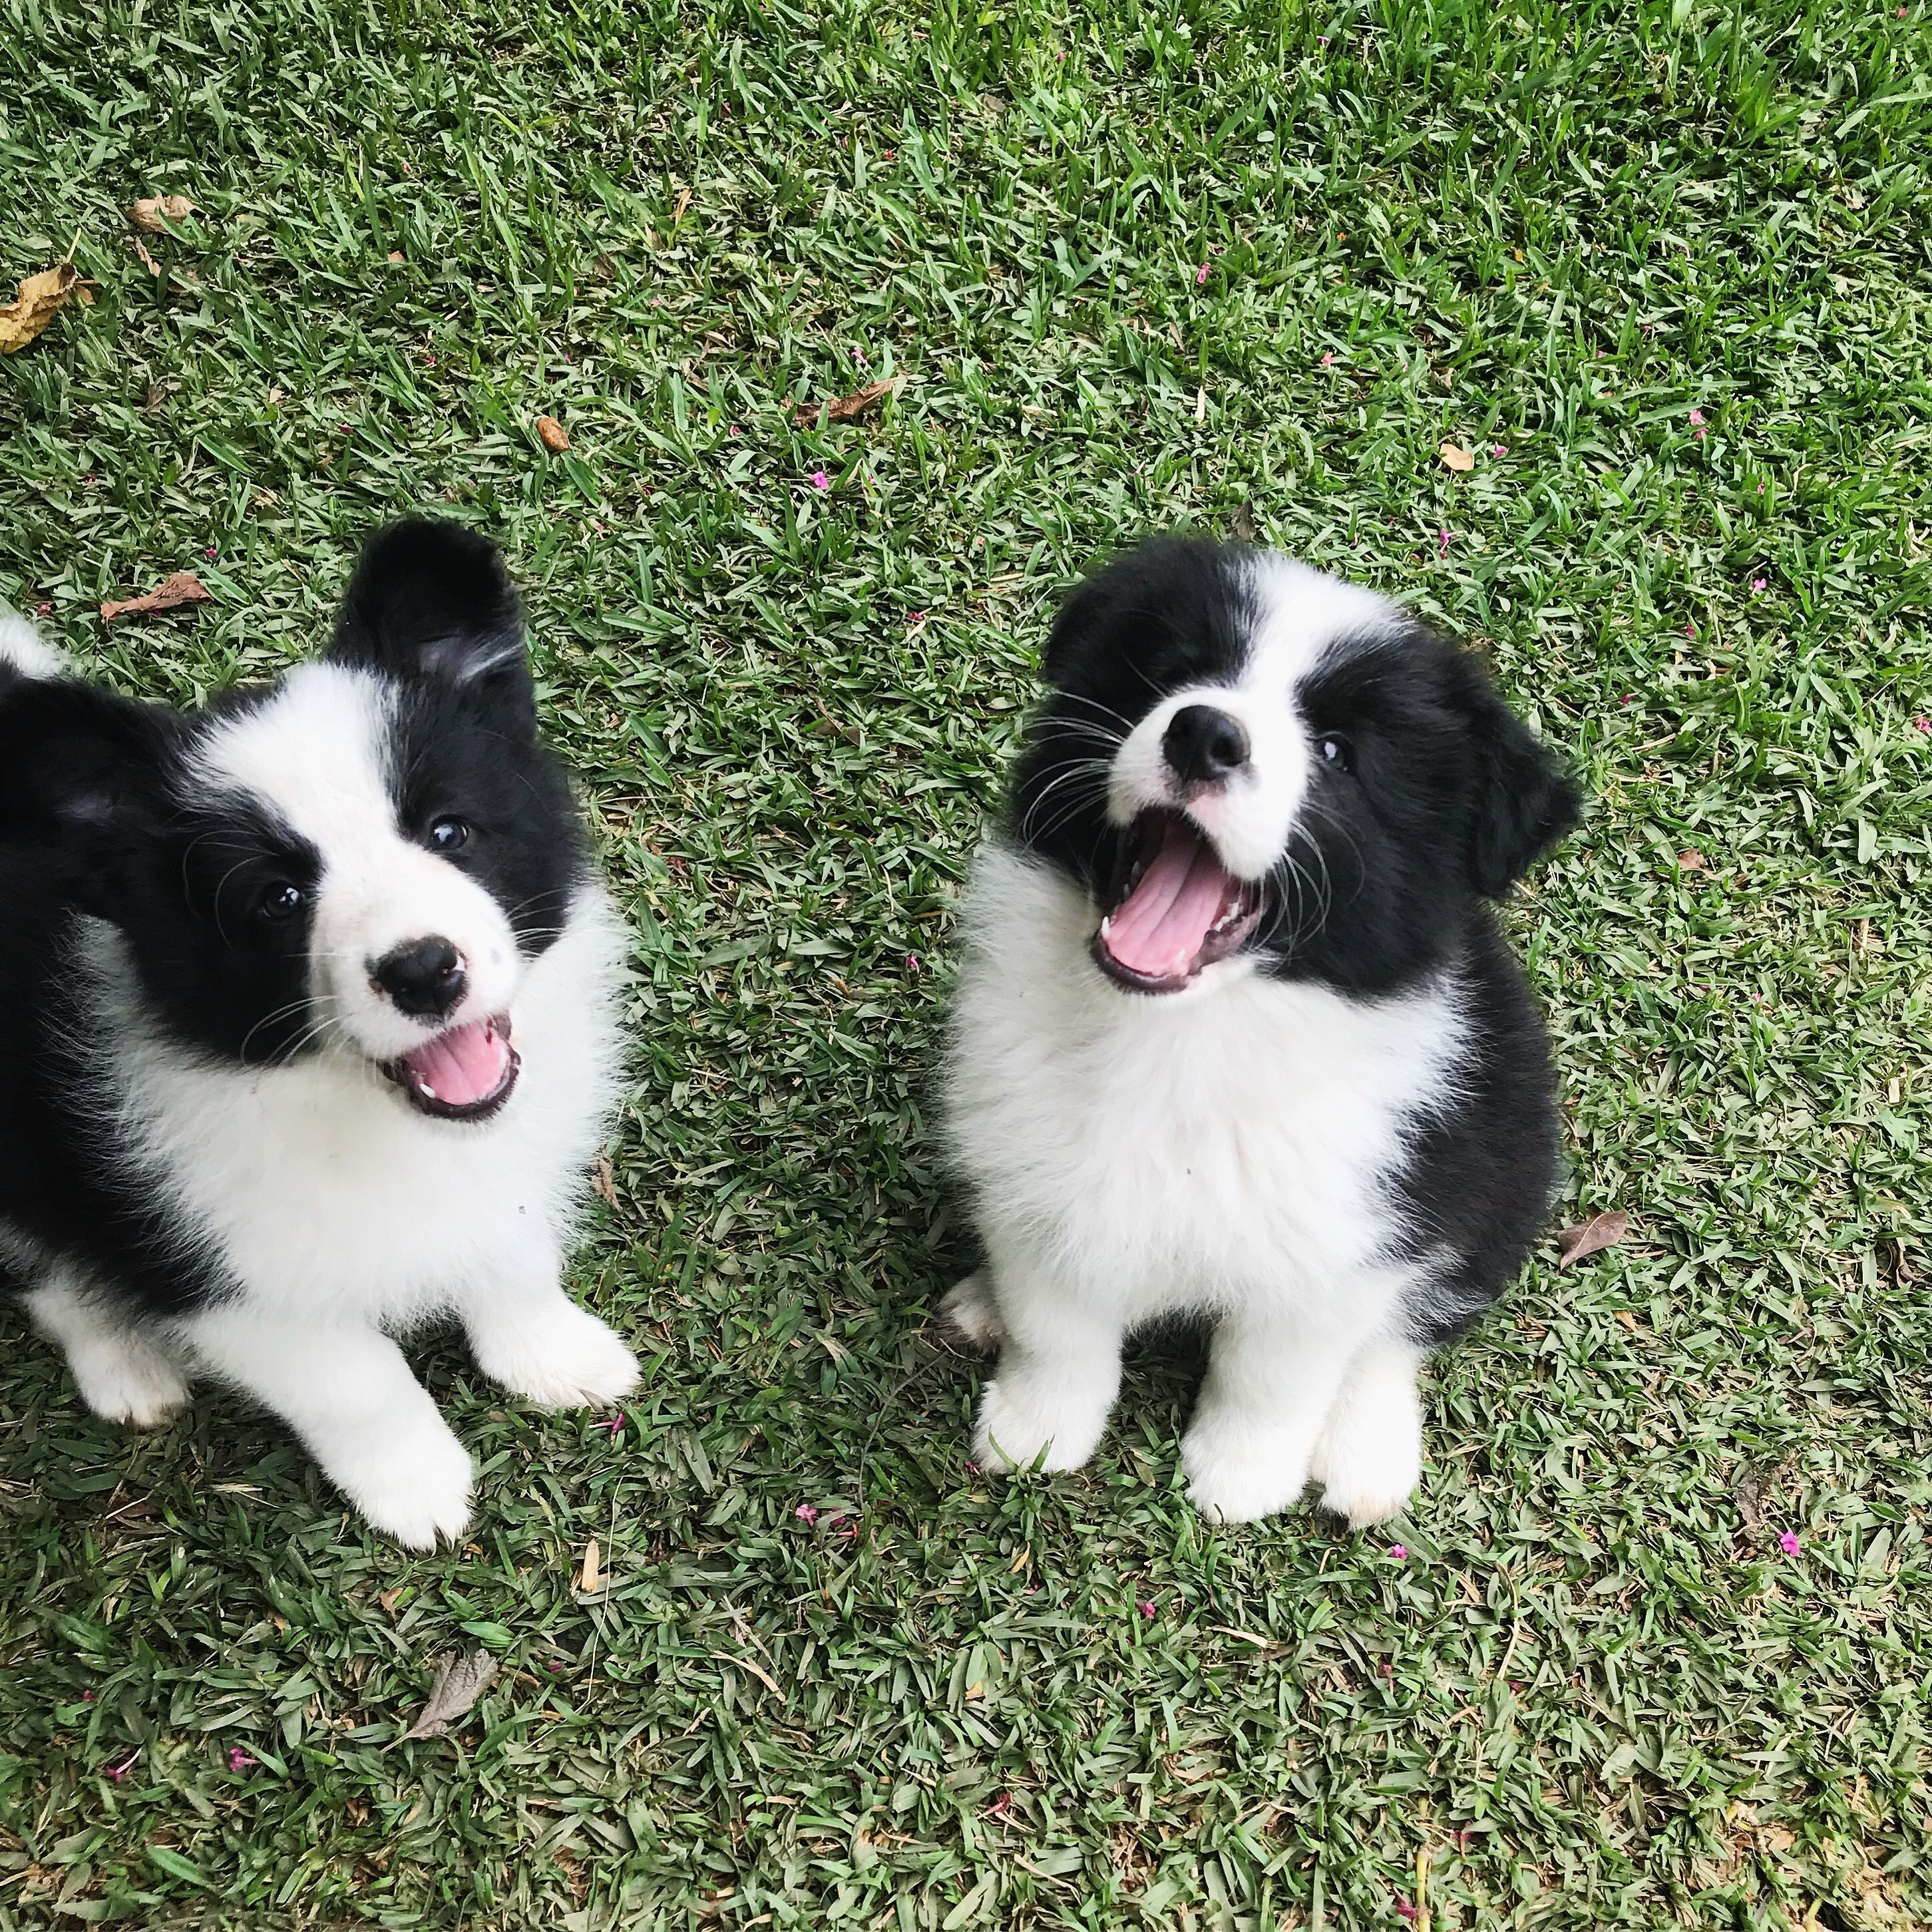 Puppies Border Collies Bordercollie Puppy Dogs And Puppies